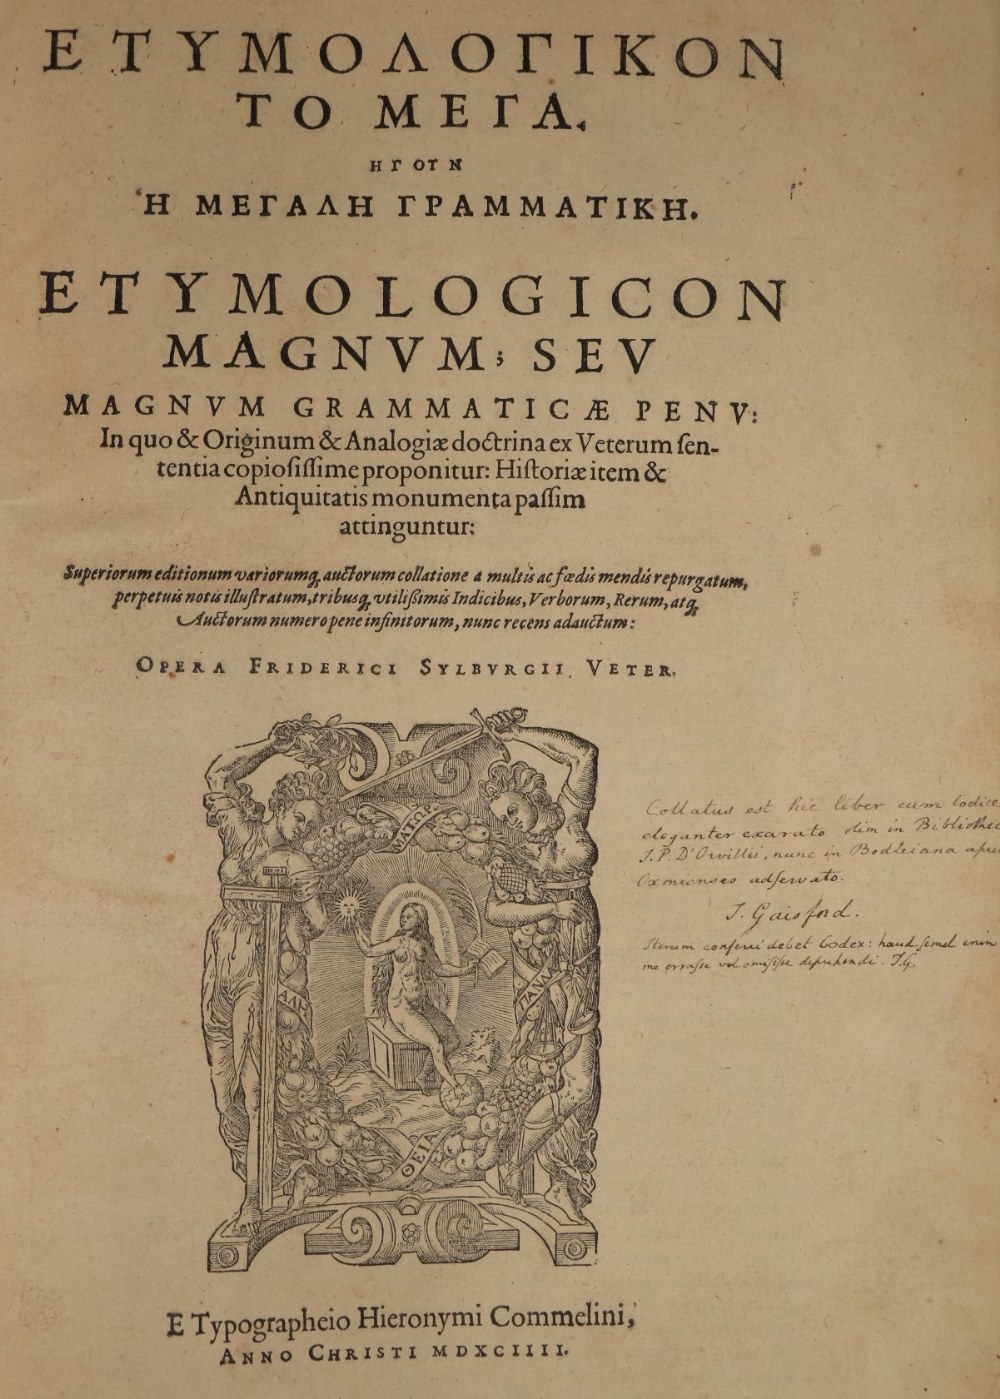 Collated in Full, & with Annotations through out by Thos. Gaisford Sylburgii (Friderici)